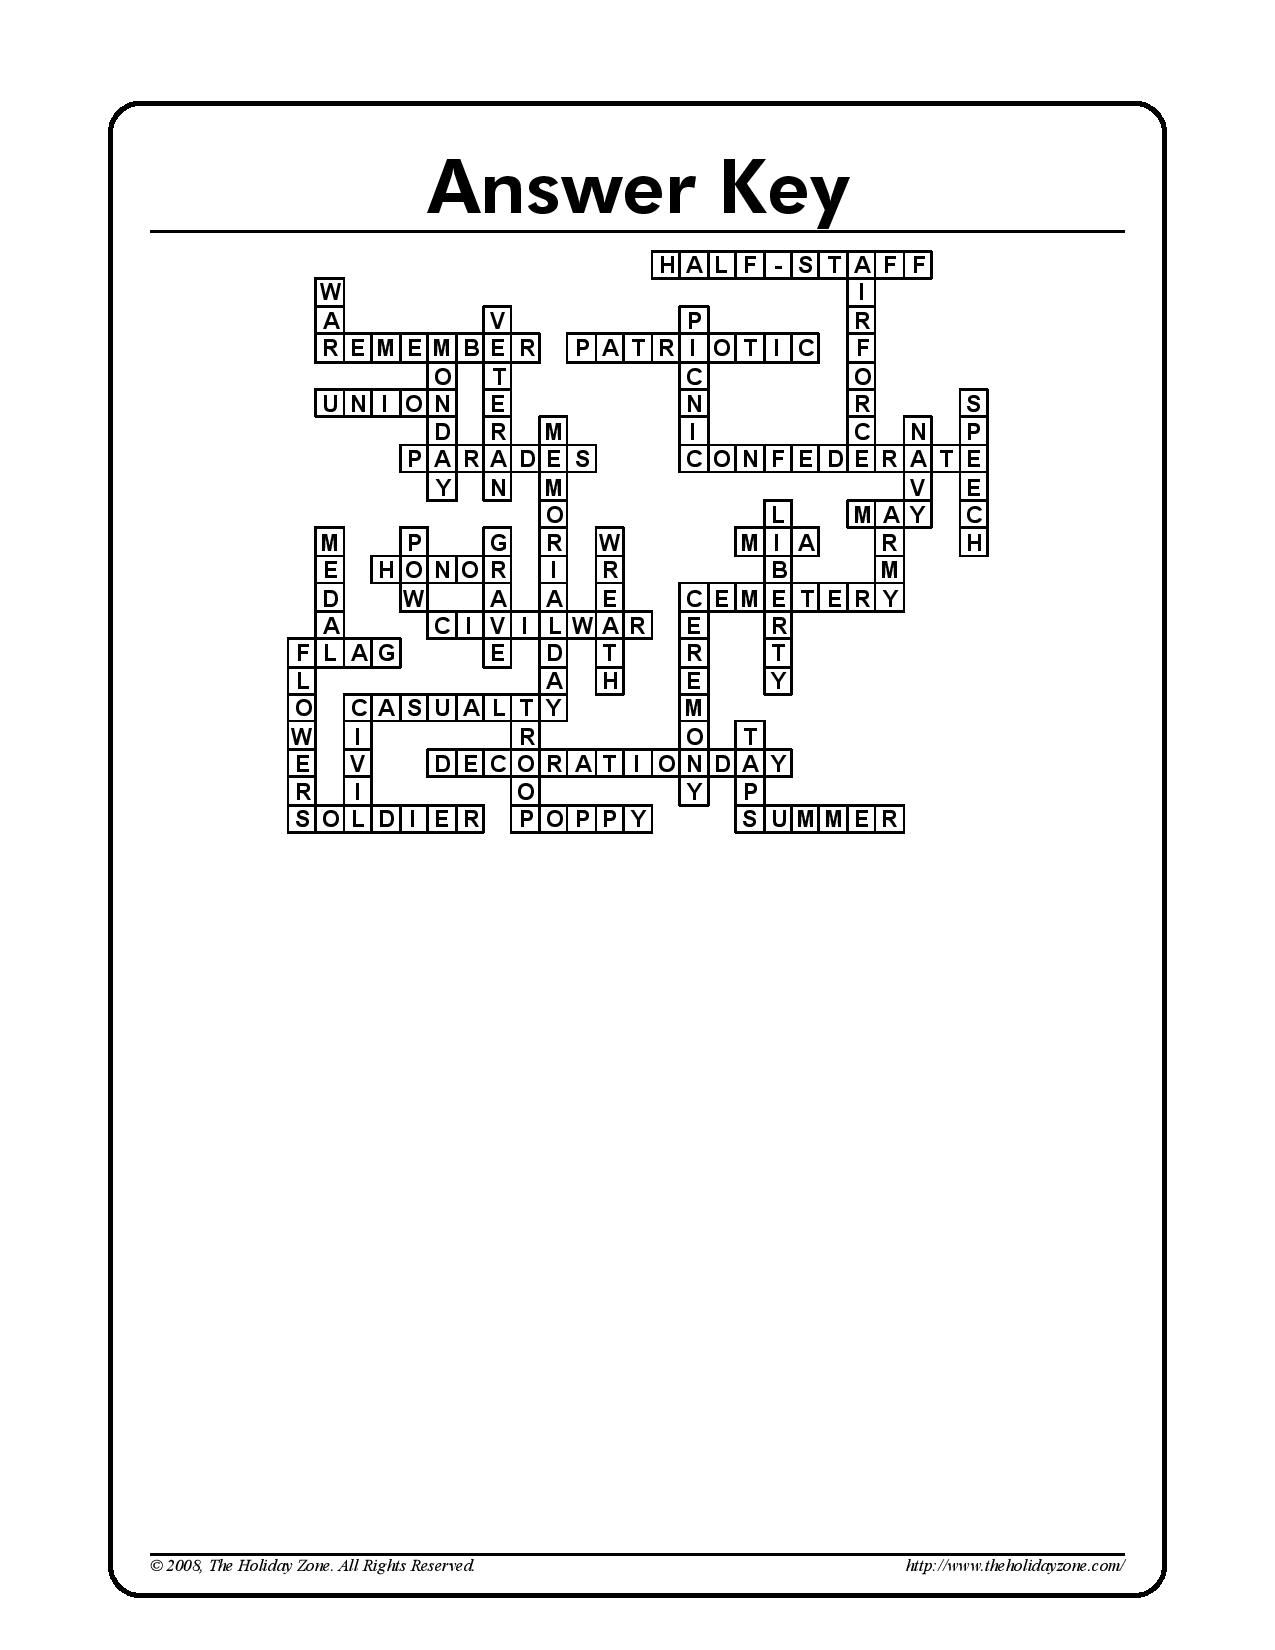 Memorial Day Crossword Puzzle Answer Sheet